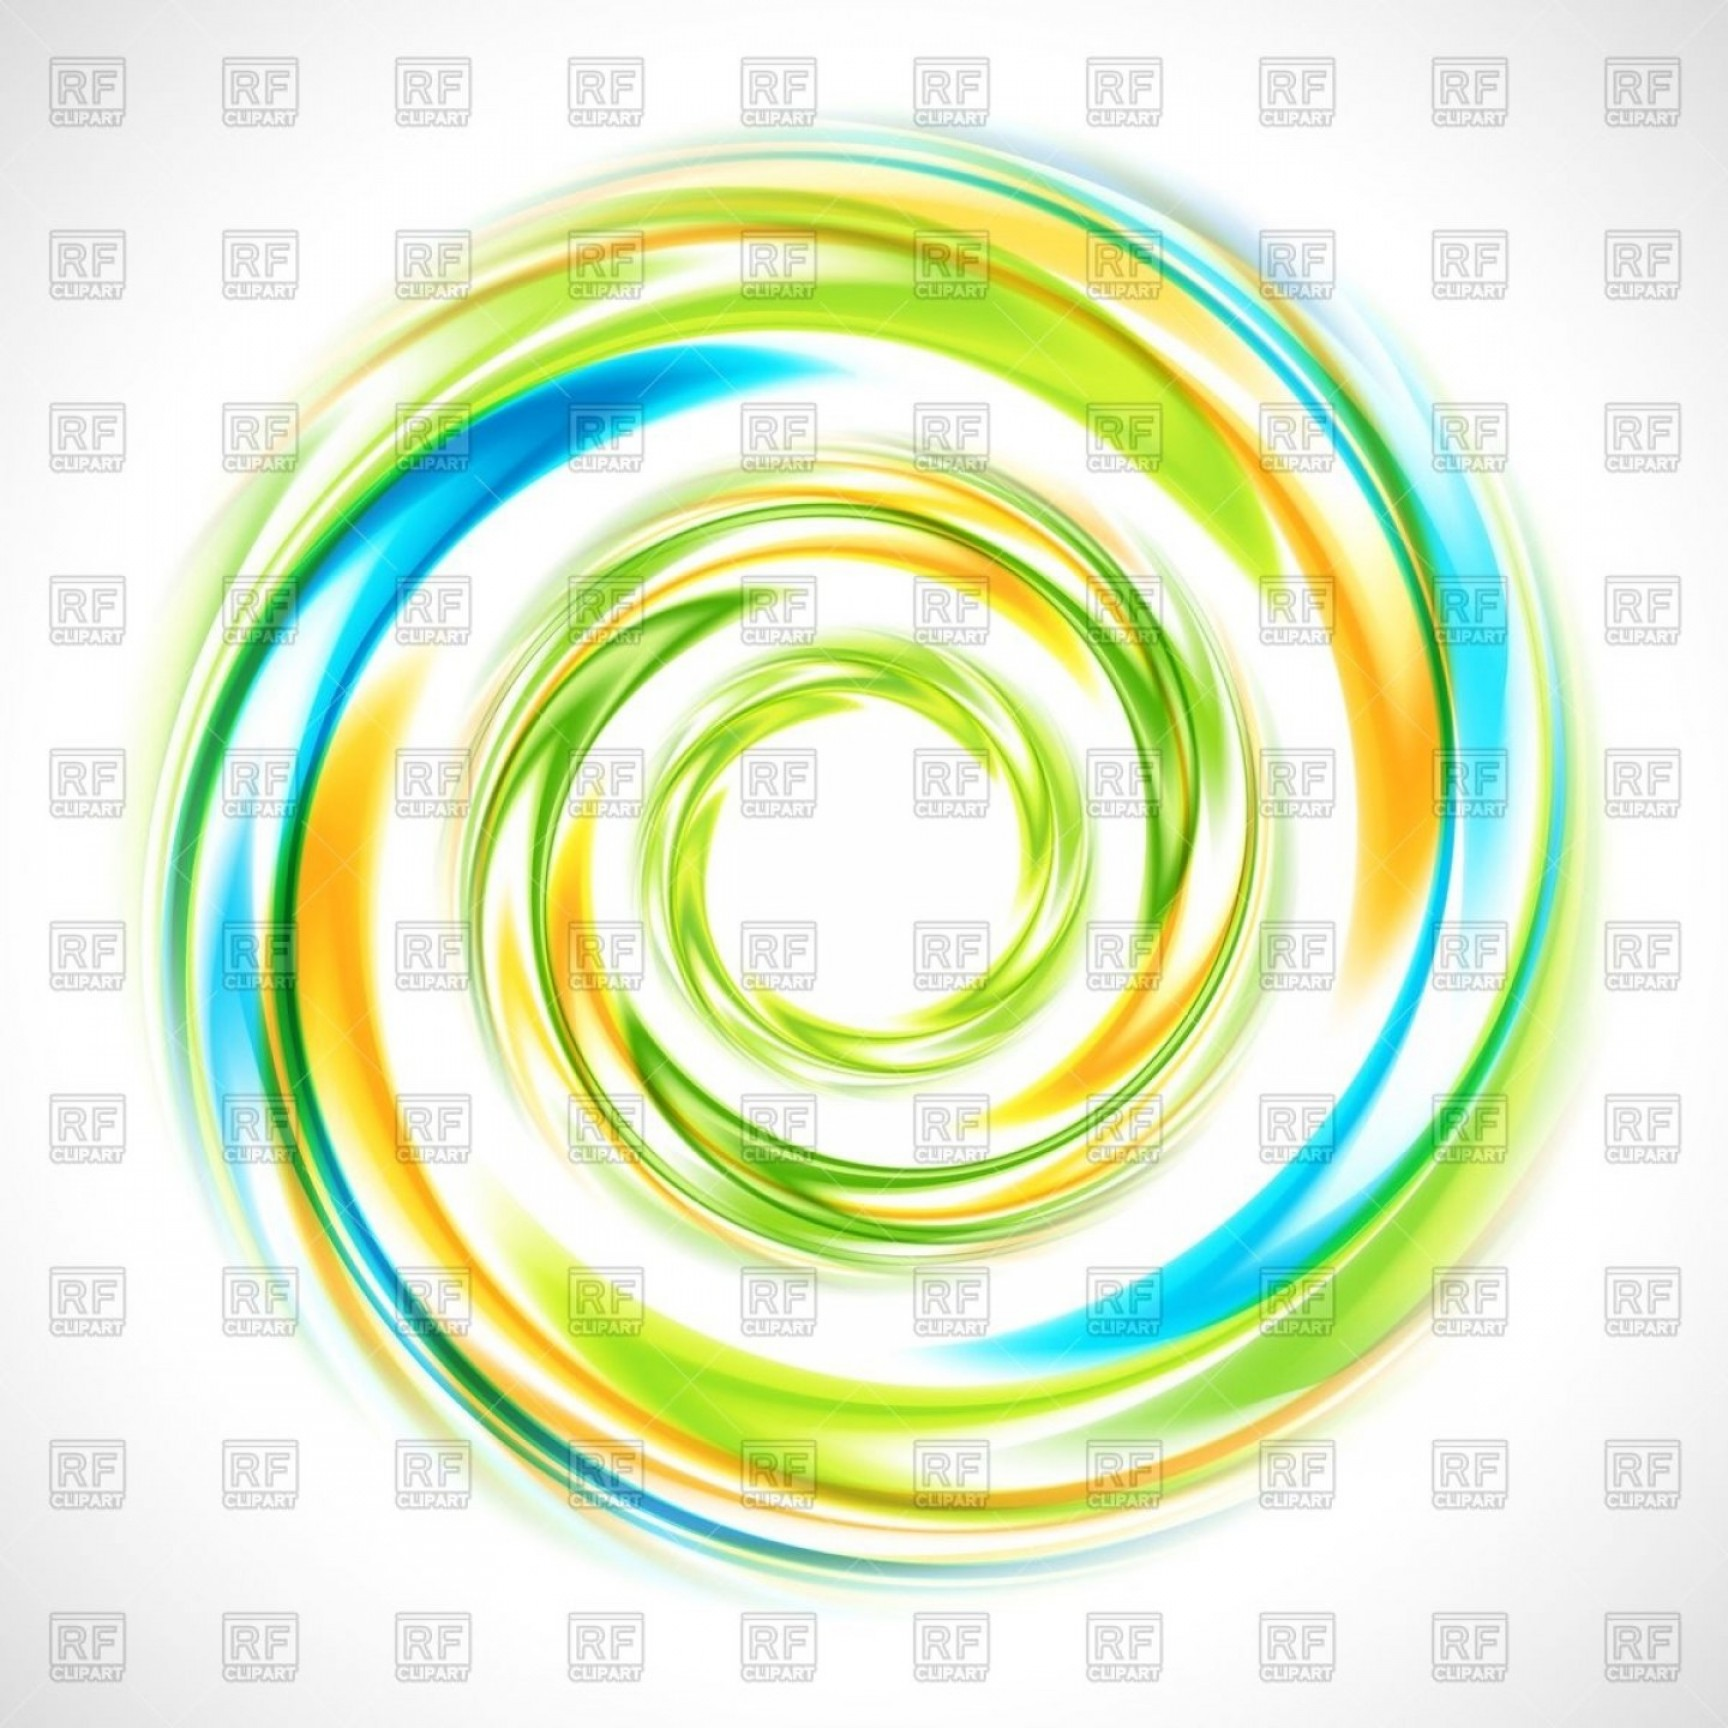 Blue And Orange Circle Vector: Abstract Green Blue And Yellow Swirl Circle Vector Clipart